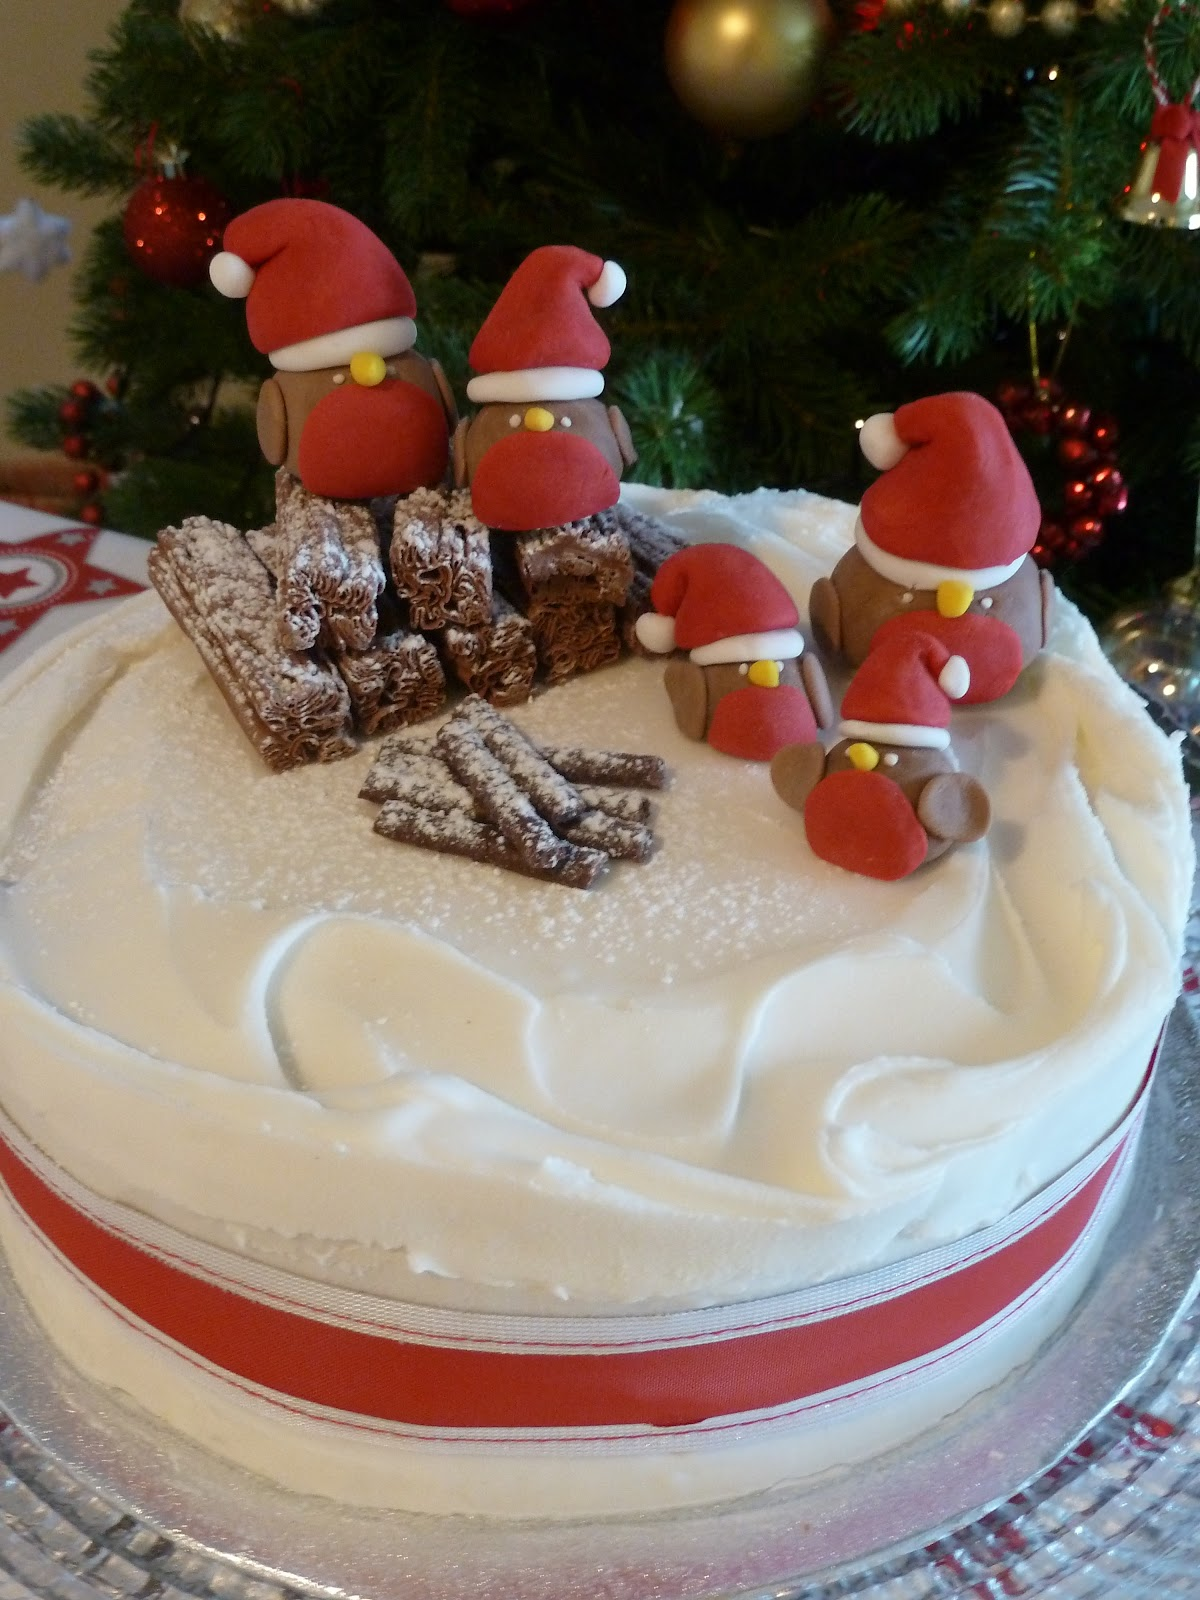 How to make christmas cake - Christmas Cake Decorated With Swirled Royal Icing And Sugar Paste Robins